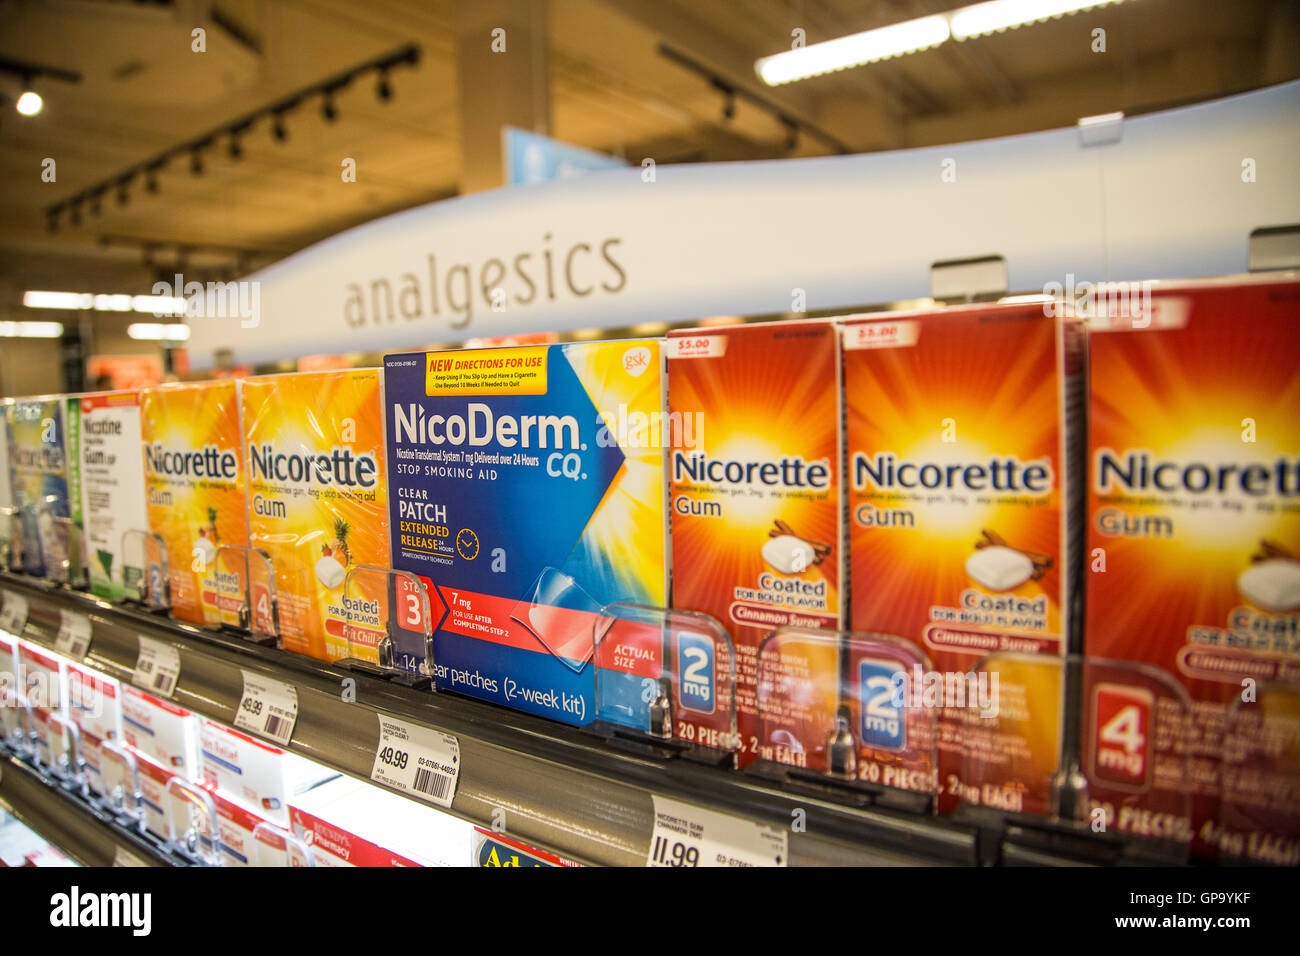 boxes of NicoDerm and Nicorette products on the shelf of a pharmacy - Stock Image